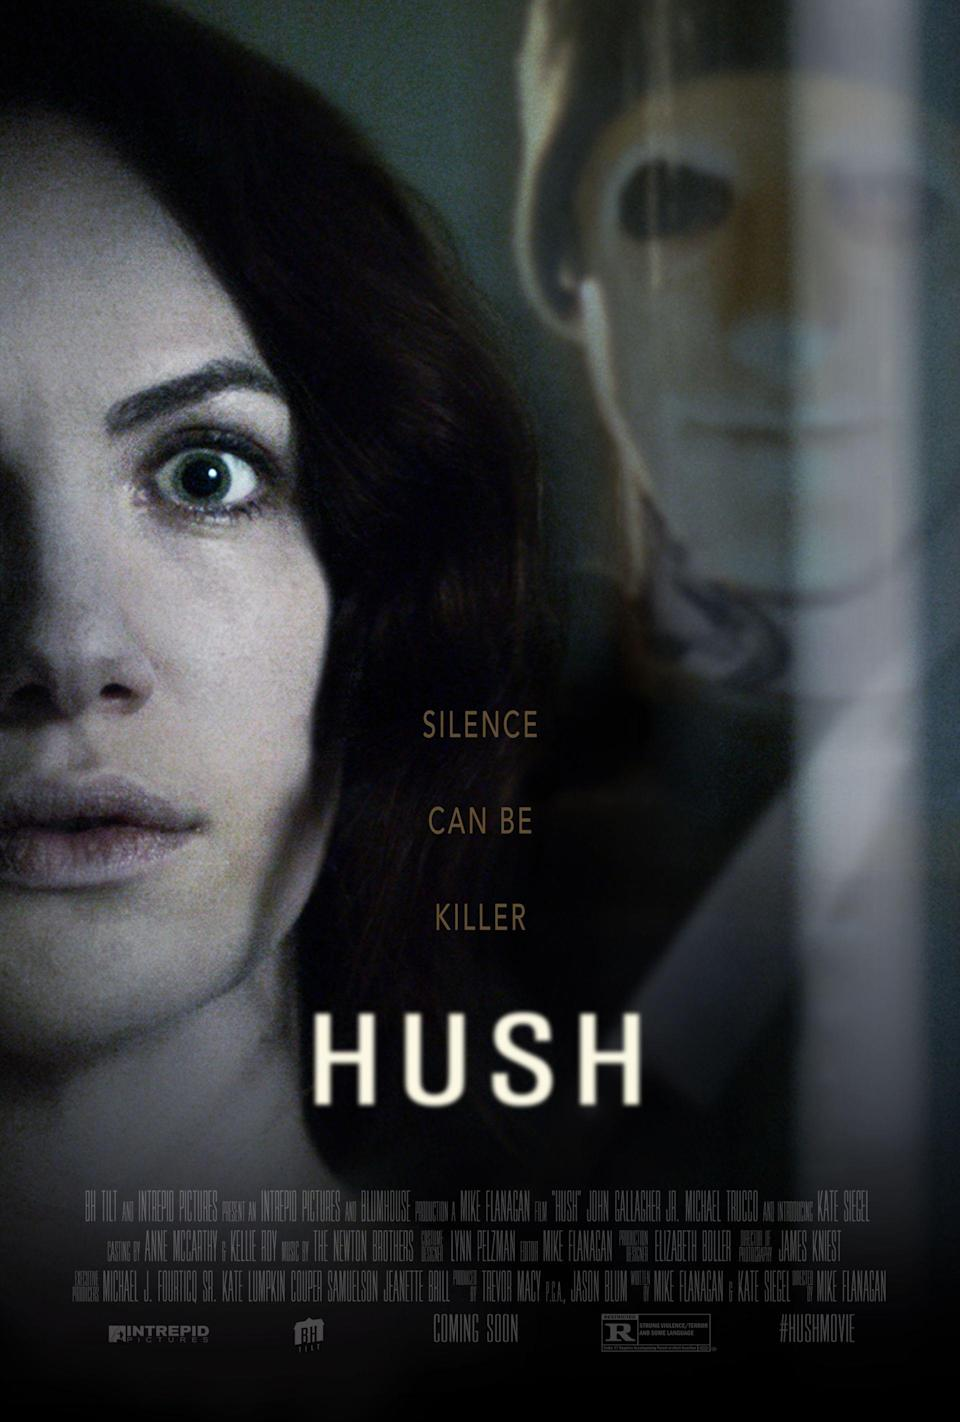 "<p>One of the most original horror movies in recent years, this tightly wound story centers on a deaf woman who has to fight for her life after a masked psychopath invades her home. We're honestly anxious just thinking about that plot description. If you like to be terrified, stream this immediately. </p> <p><a href=""https://www.netflix.com/title/80091879"" rel=""nofollow noopener"" target=""_blank"" data-ylk=""slk:Available to stream on Netflix."" class=""link rapid-noclick-resp""><em>Available to stream on Netflix.</em></a></p>"